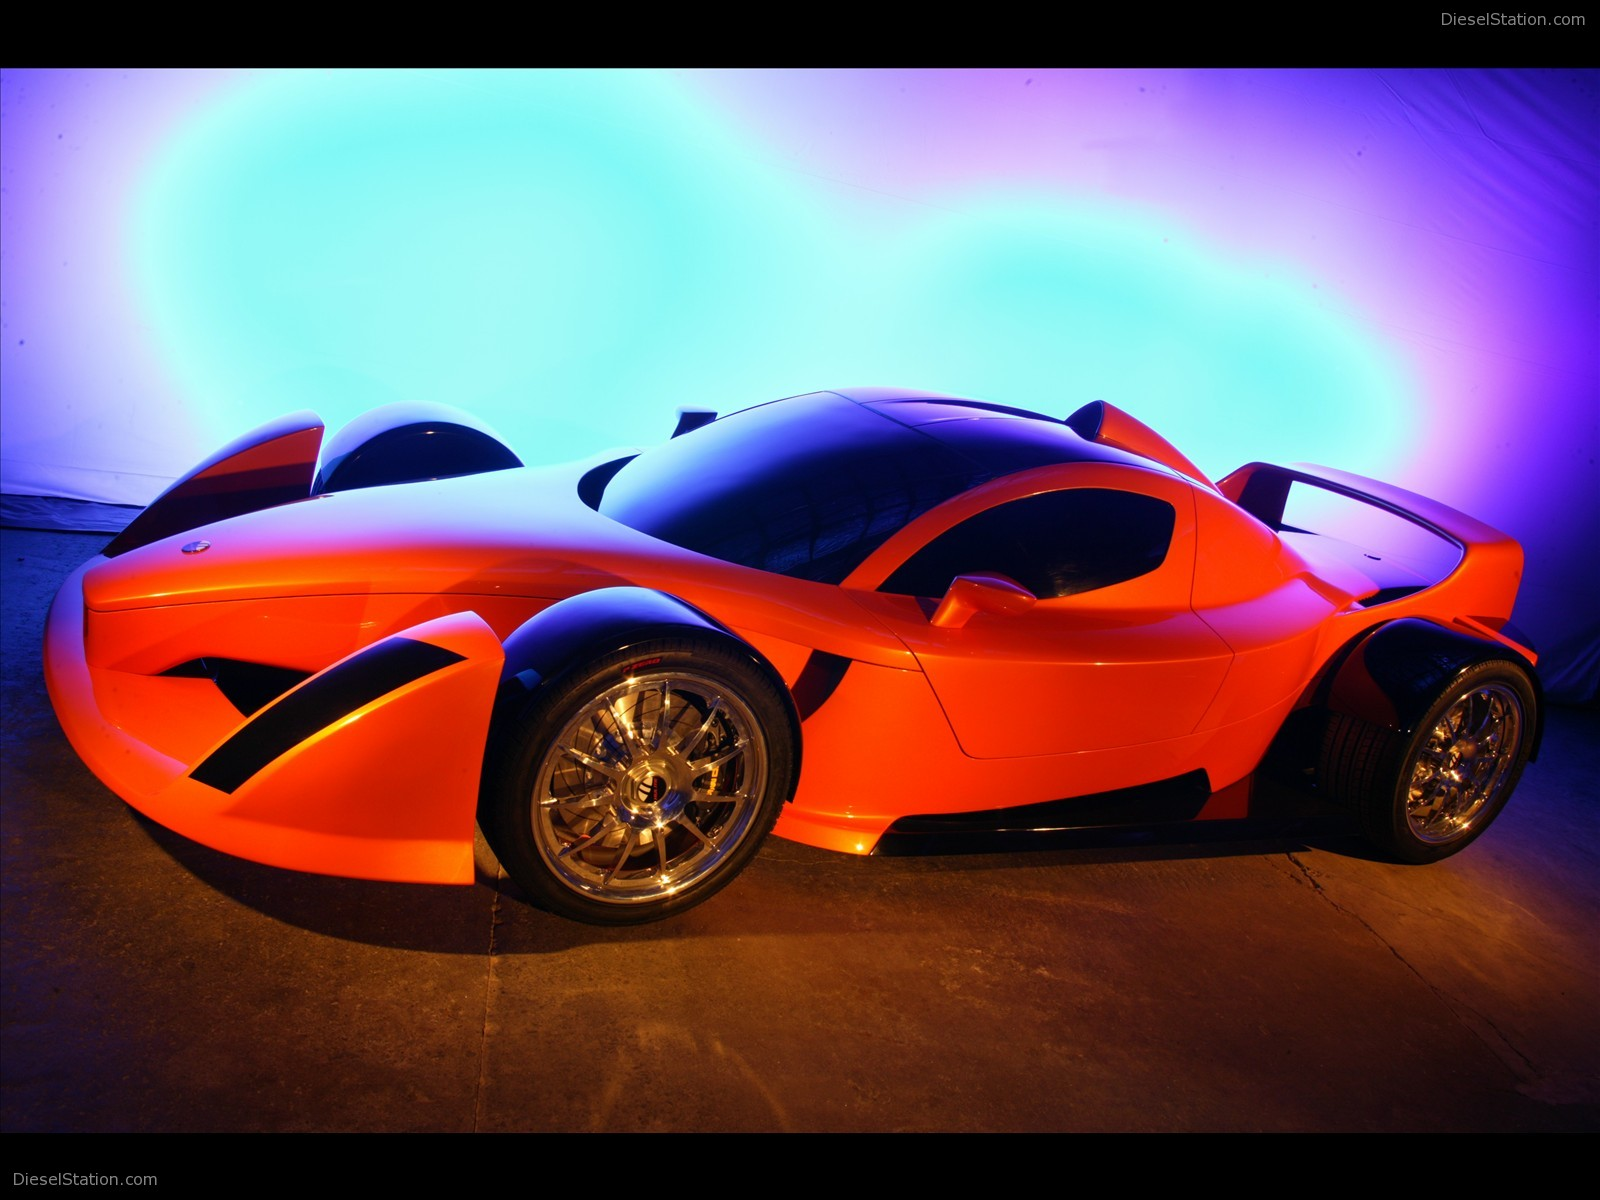 Luxury Vehicle: Exotic Supercars Wallpaper